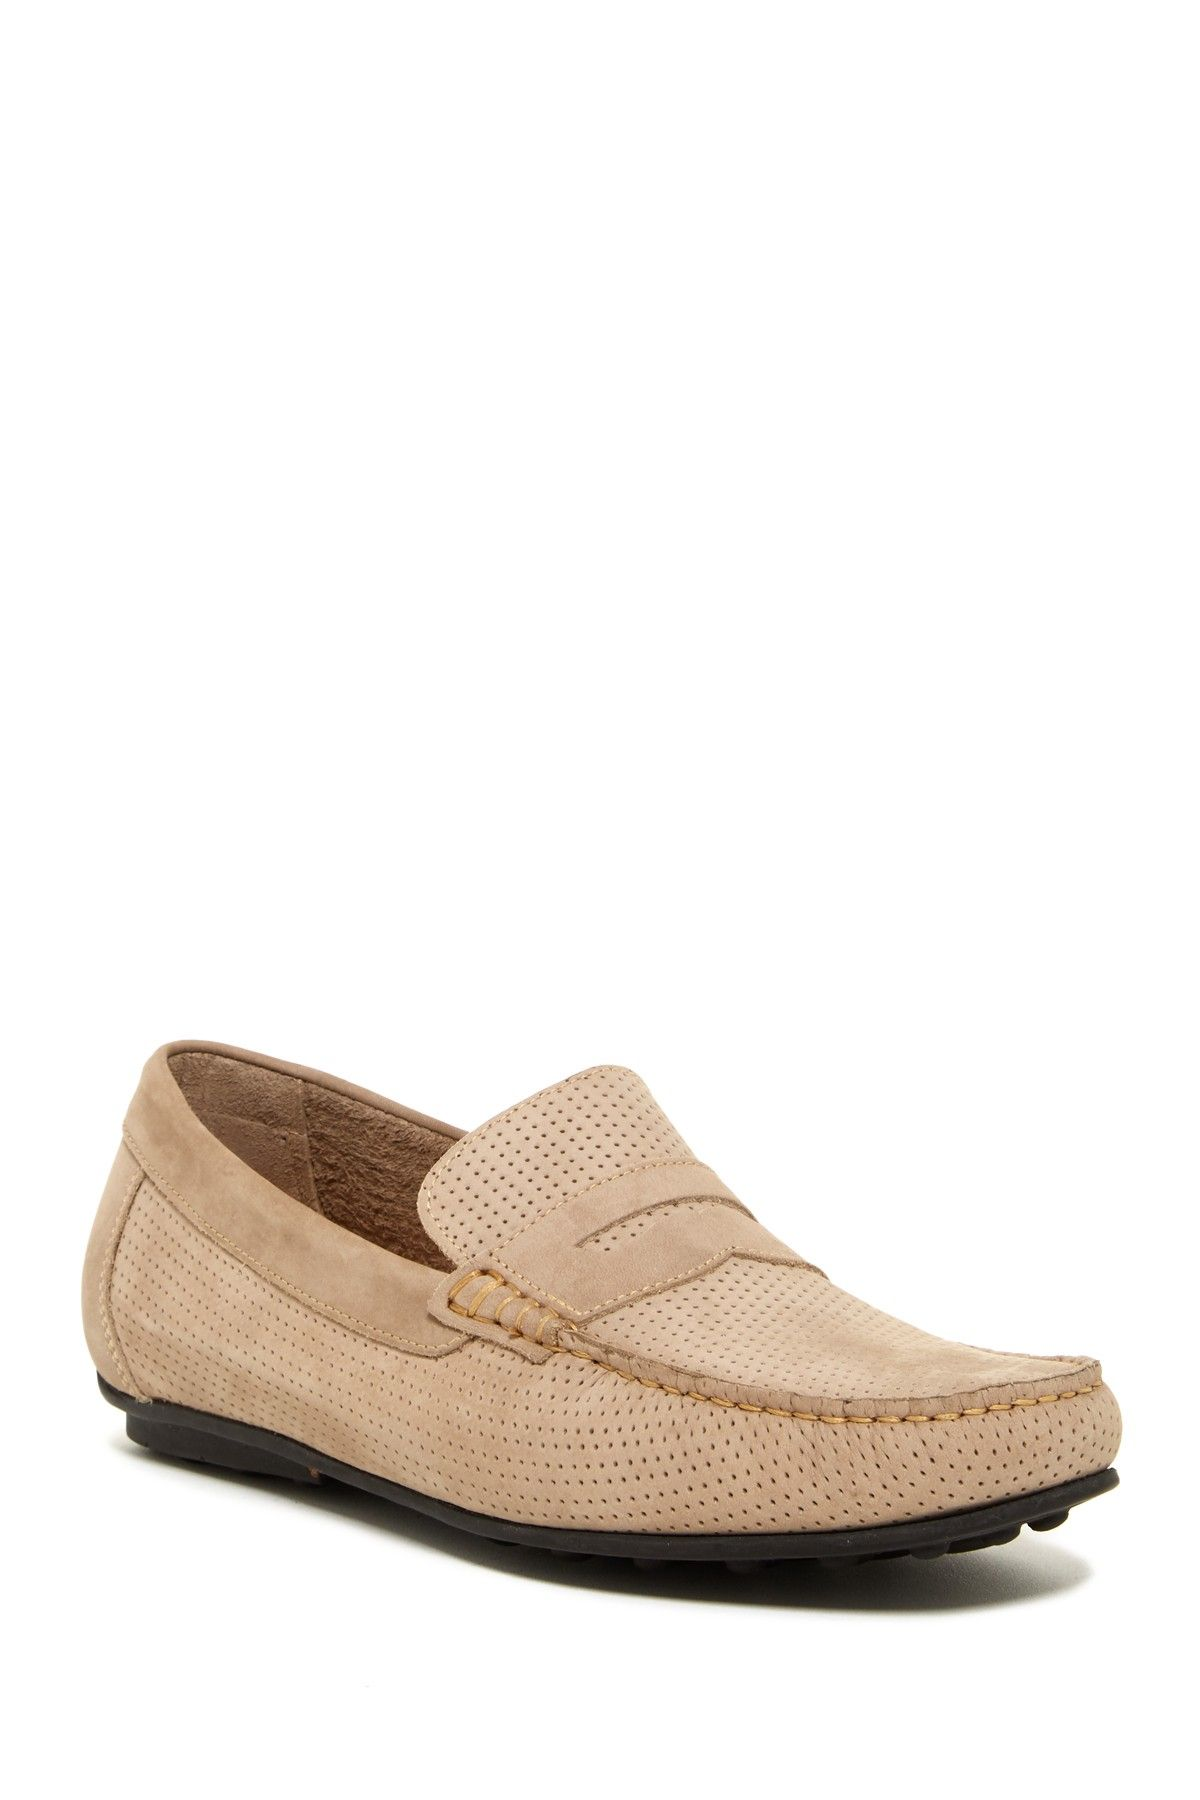 Crosby Penny Loafer